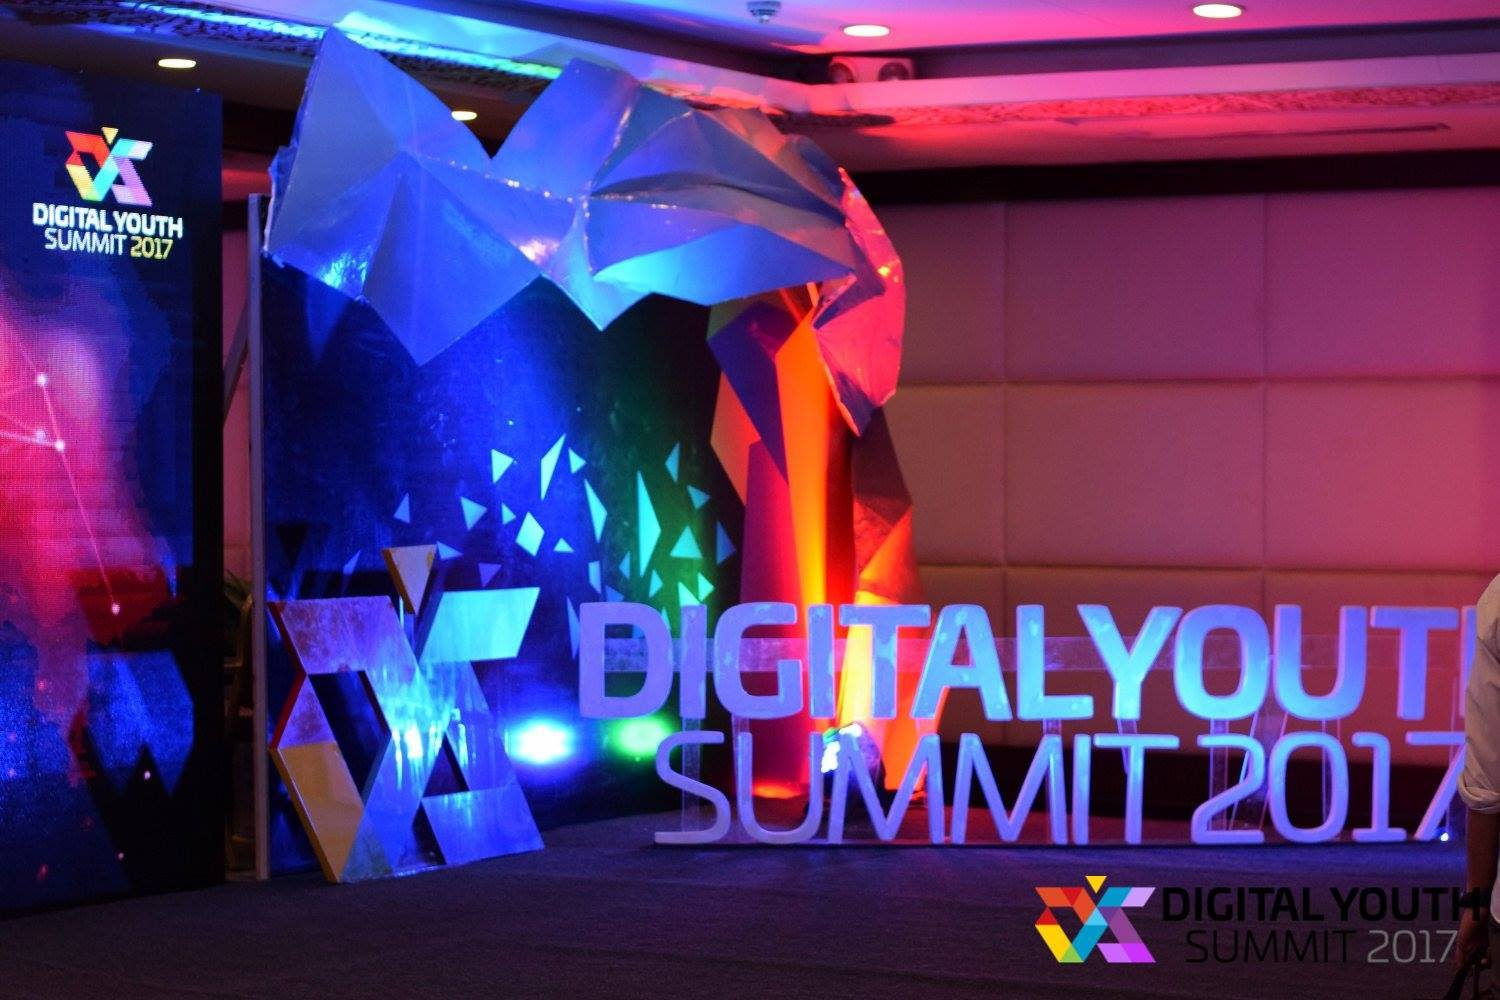 Khyber Pakhtunkhwa Information Technology Board - Digital Youth Summit 2017